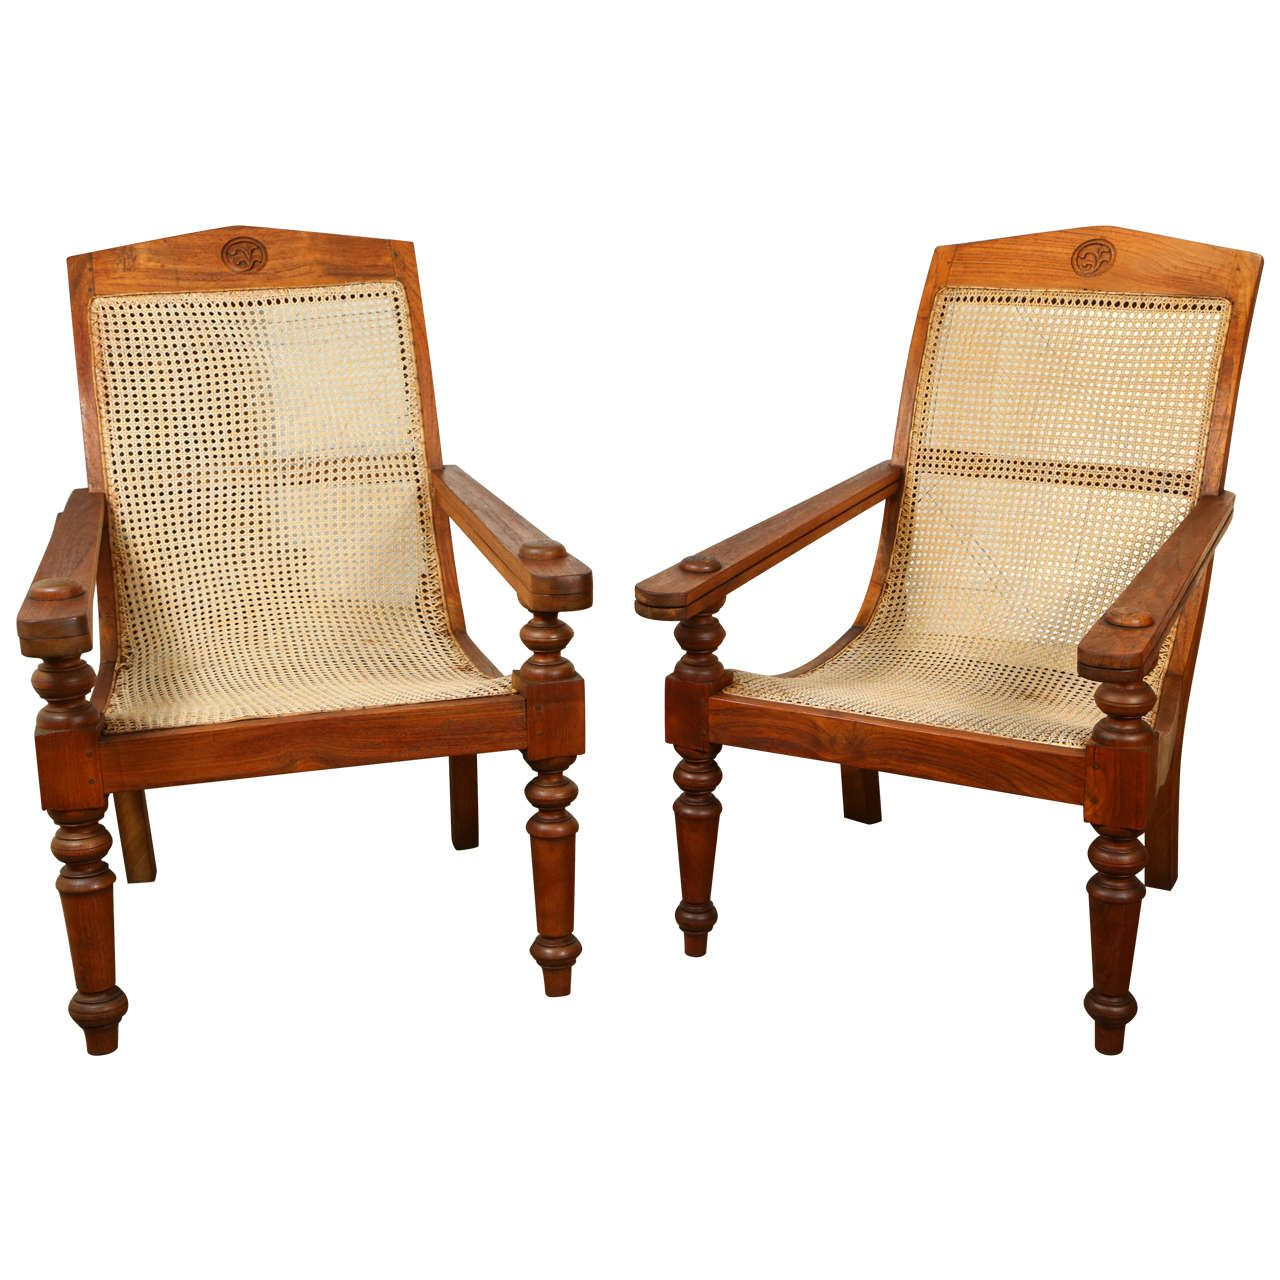 Anglo-Indian Plantation Chairs - Anglo-Indian Plantation Chairs Modern Lounge, Lounge Chairs And